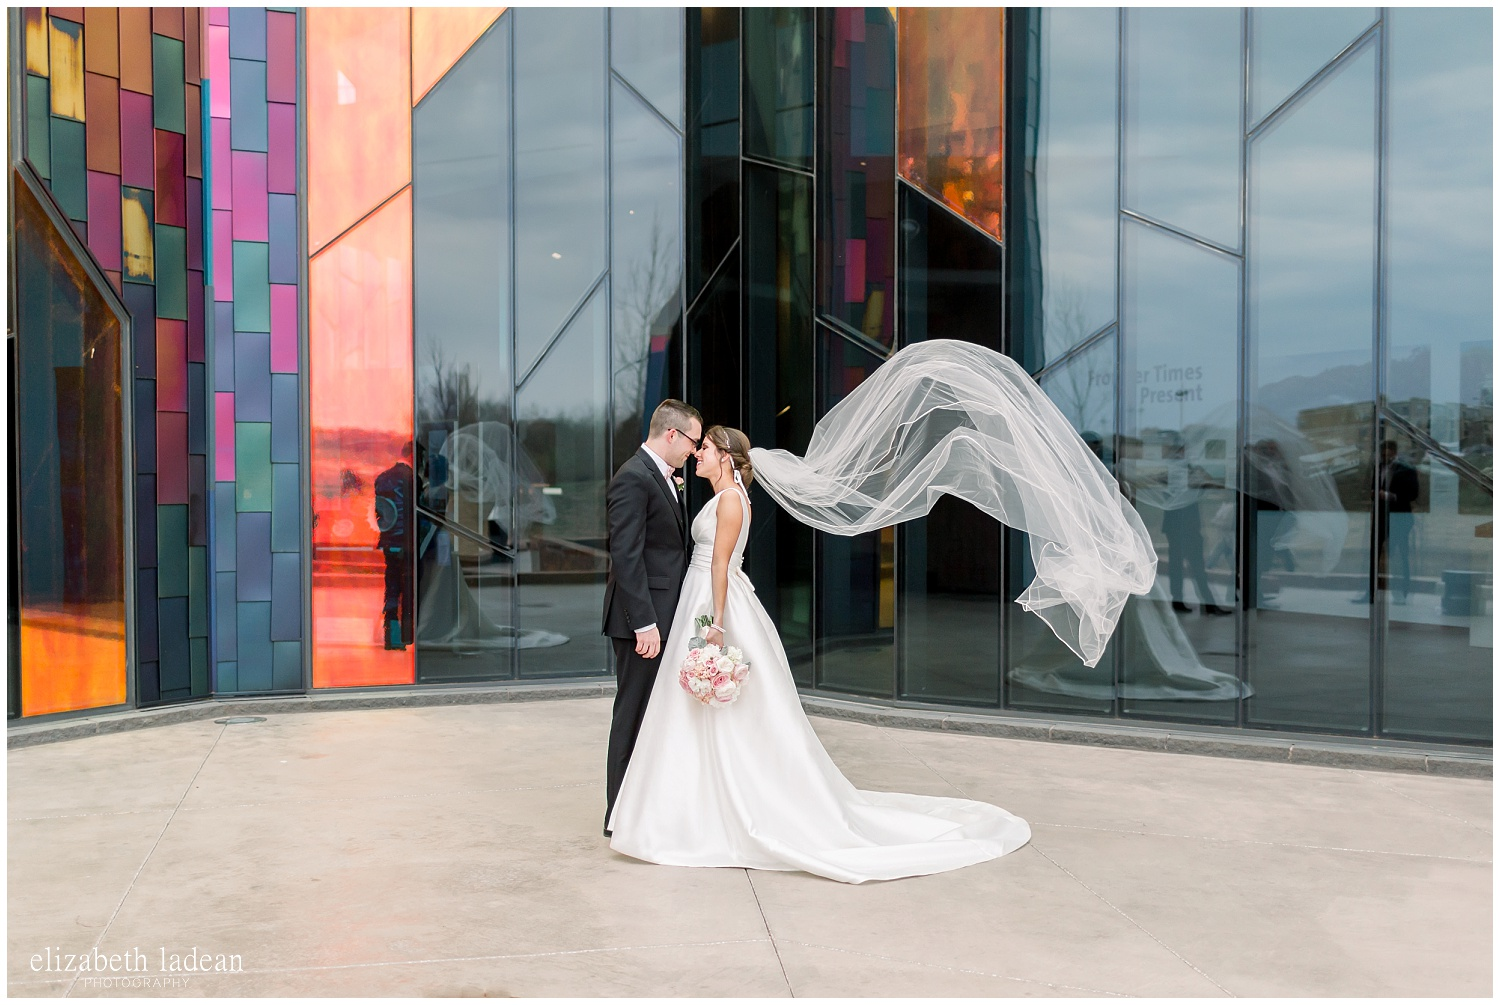 -behind-the-scenes-of-a-wedding-photographer-2018-elizabeth-ladean-photography-photo_3423.jpg